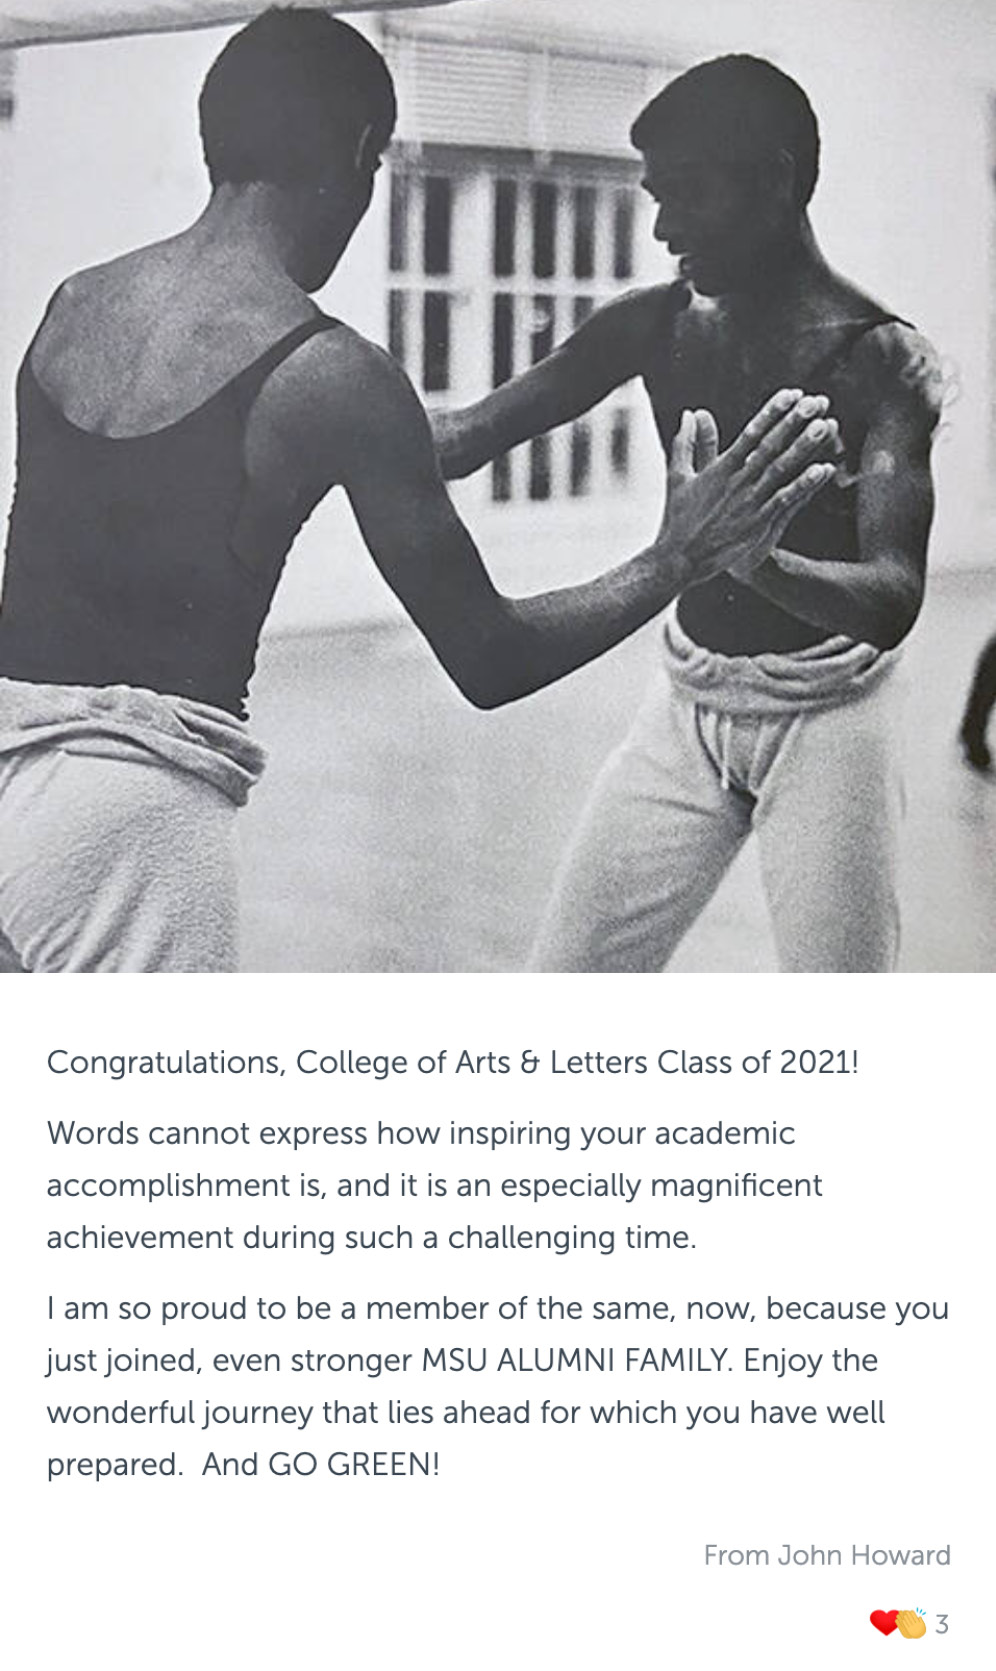 Post with an old photo of young man in a dance studio, and congratulatory message